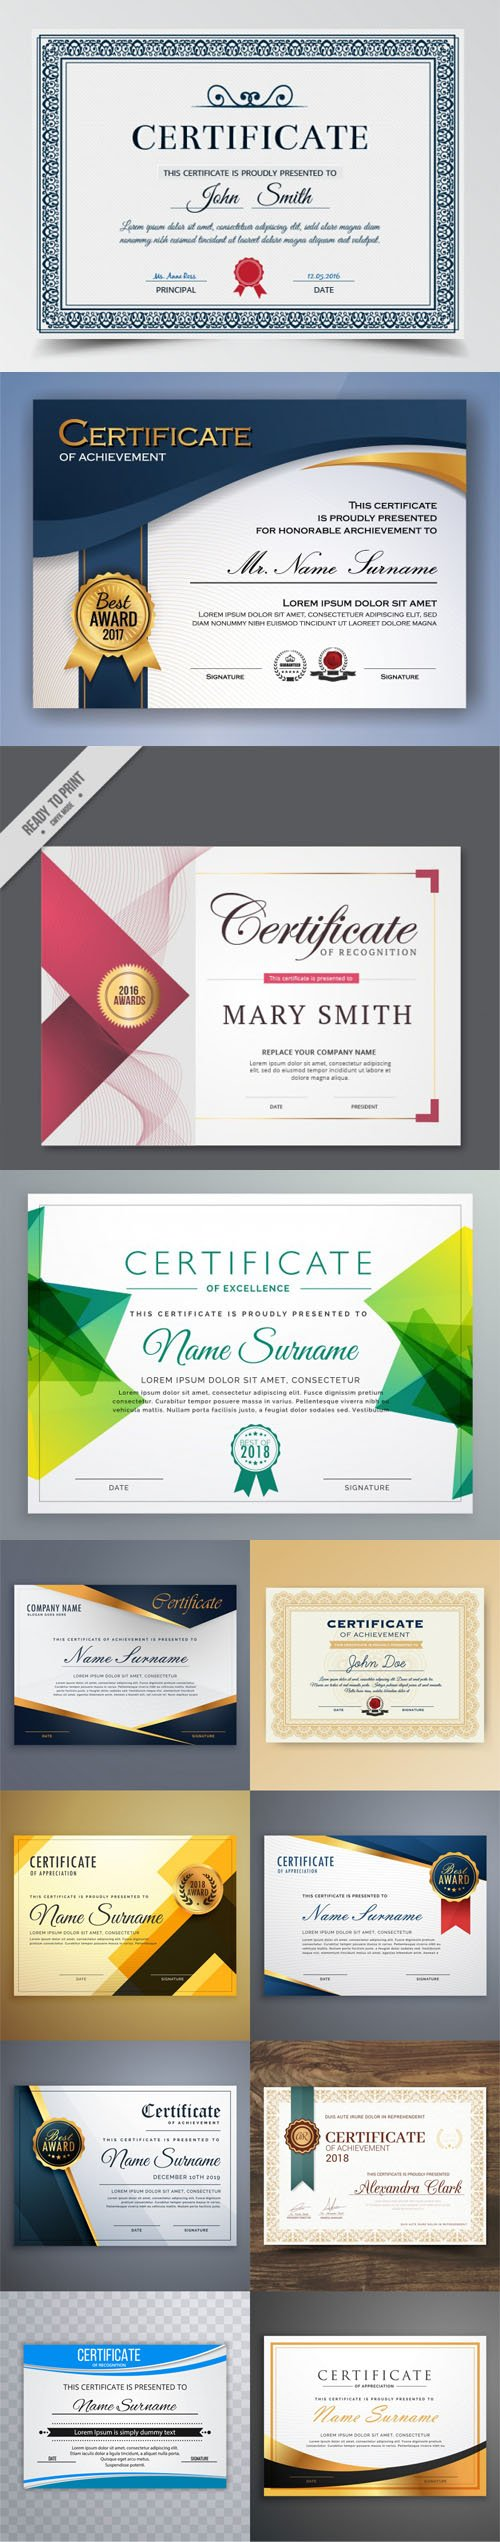 12 Certificate & Diploma Templates Design Vector